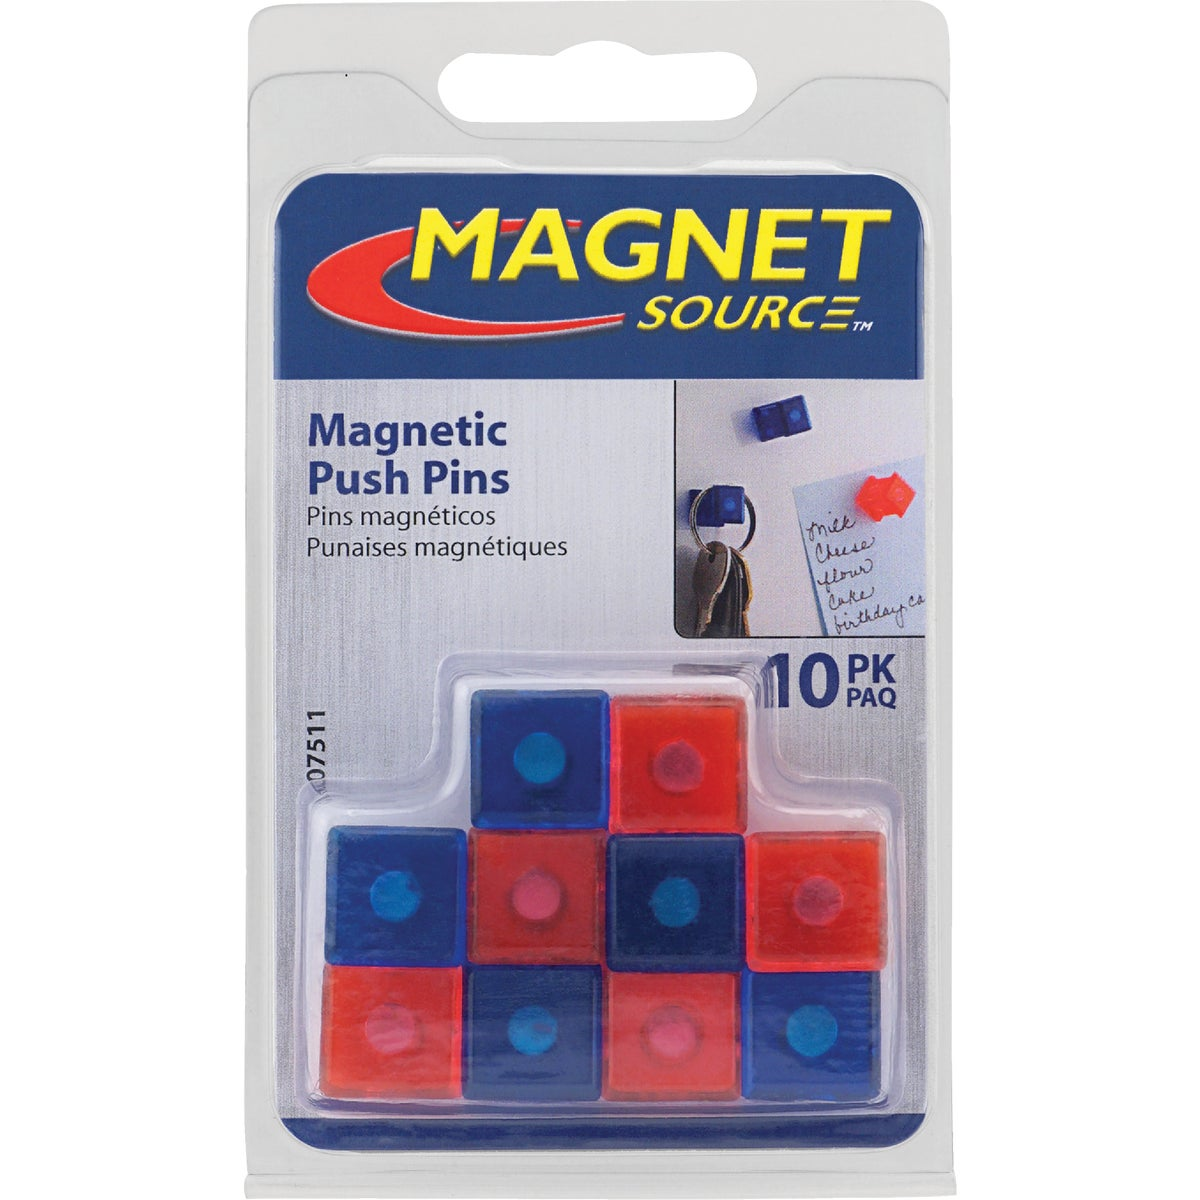 PUSH PIN MAGNETS - 07511 by Master Magnetics